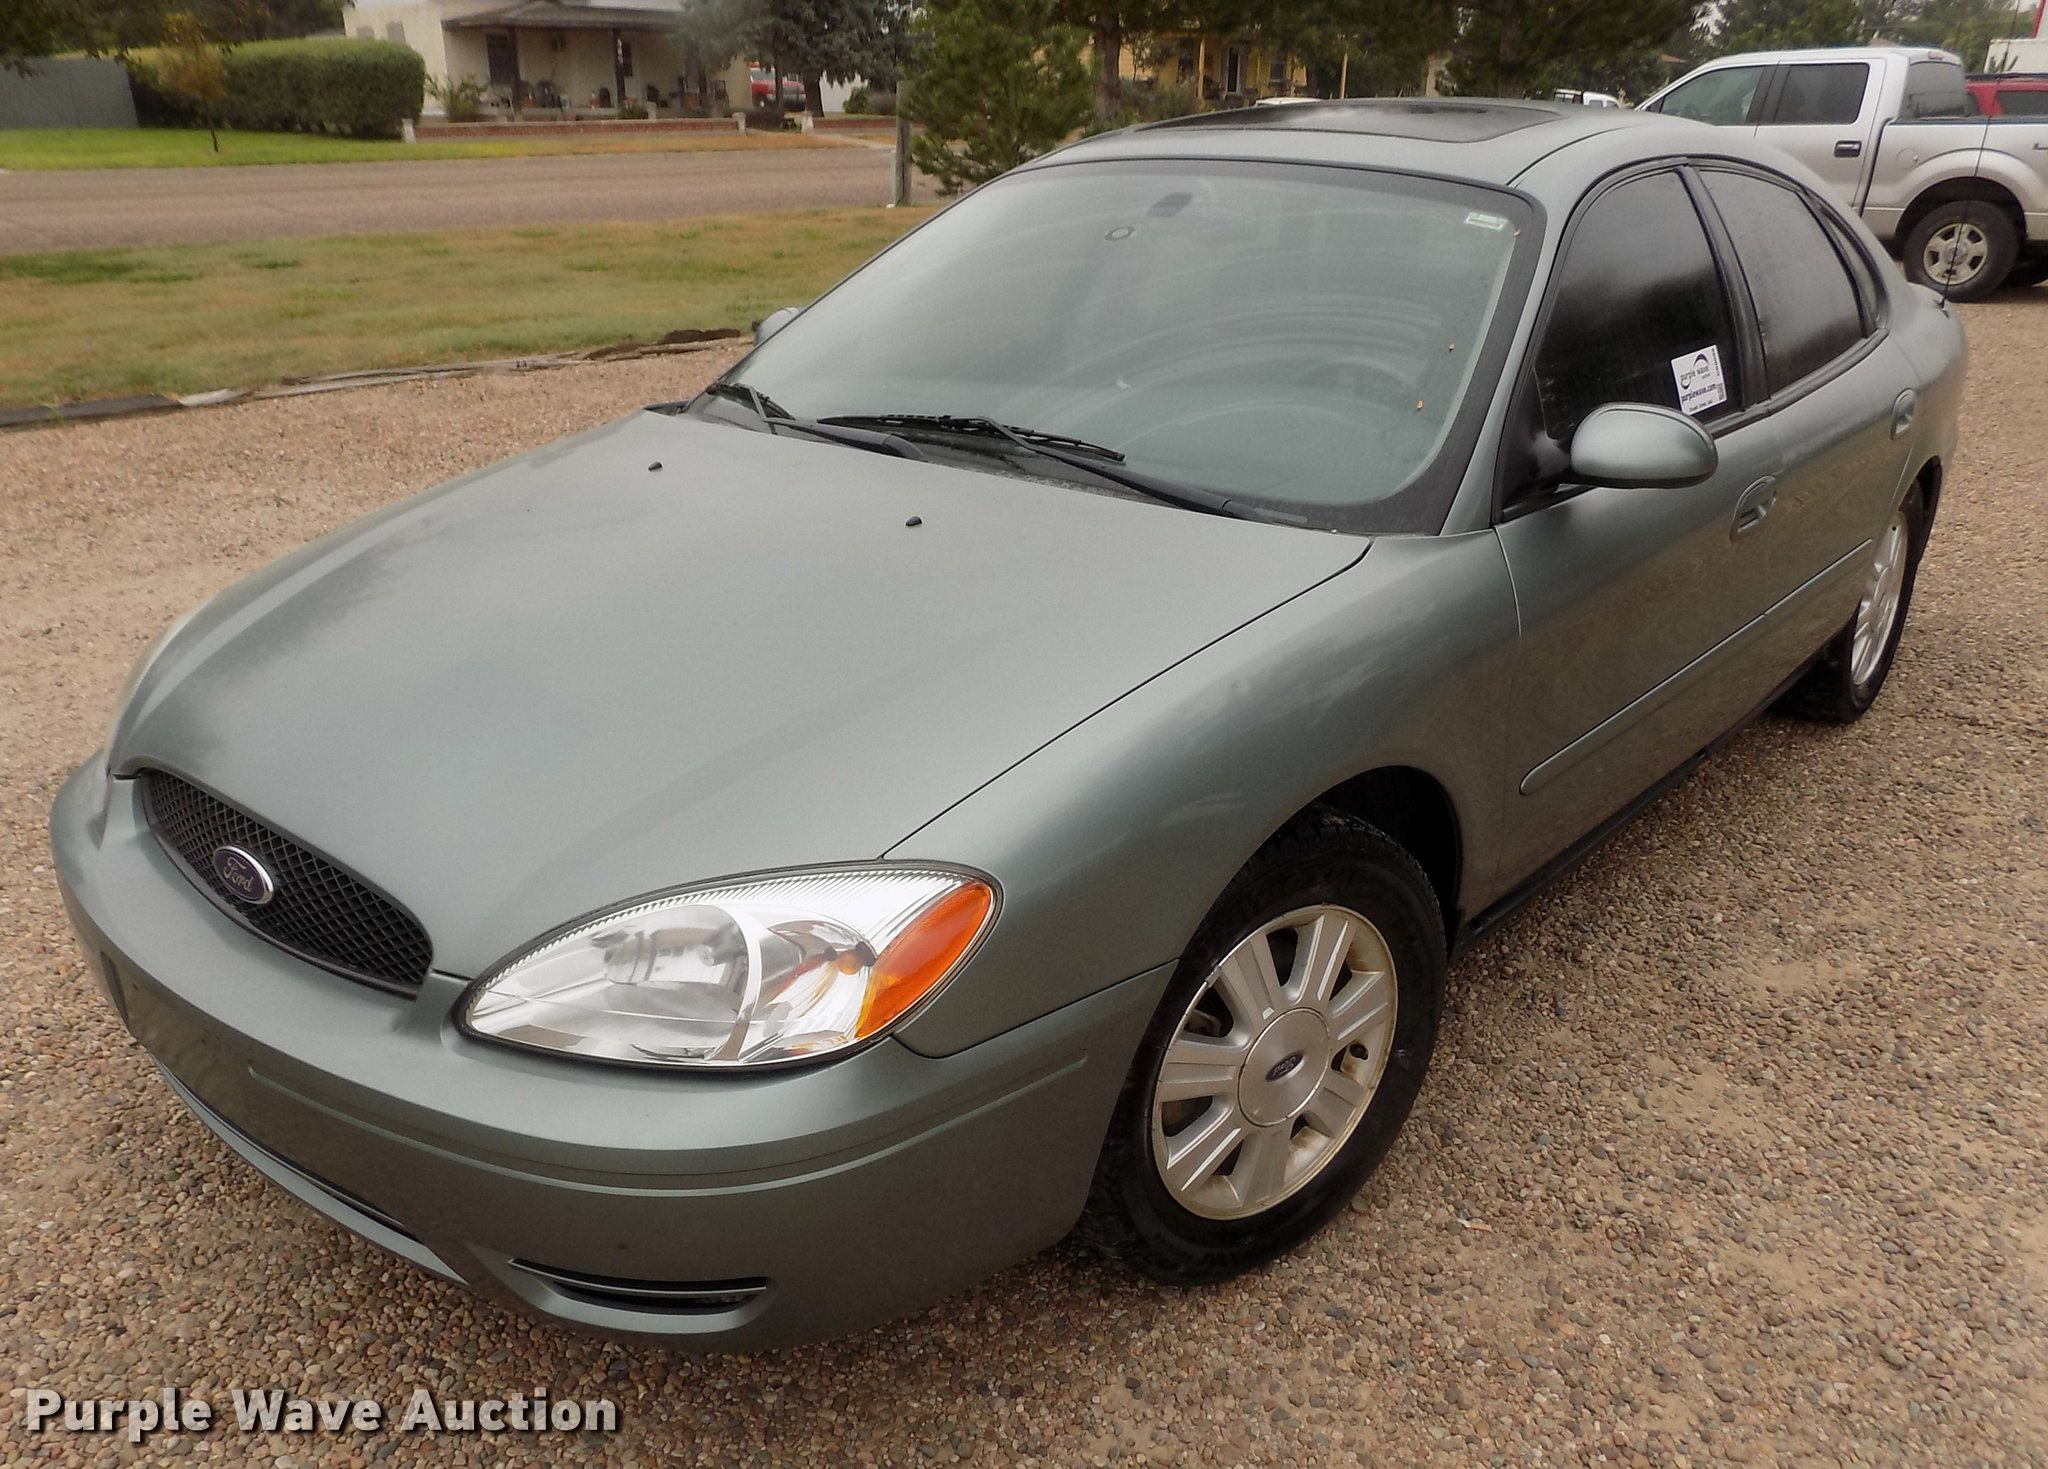 Db9098 image for item db9098 2005 ford taurus sel